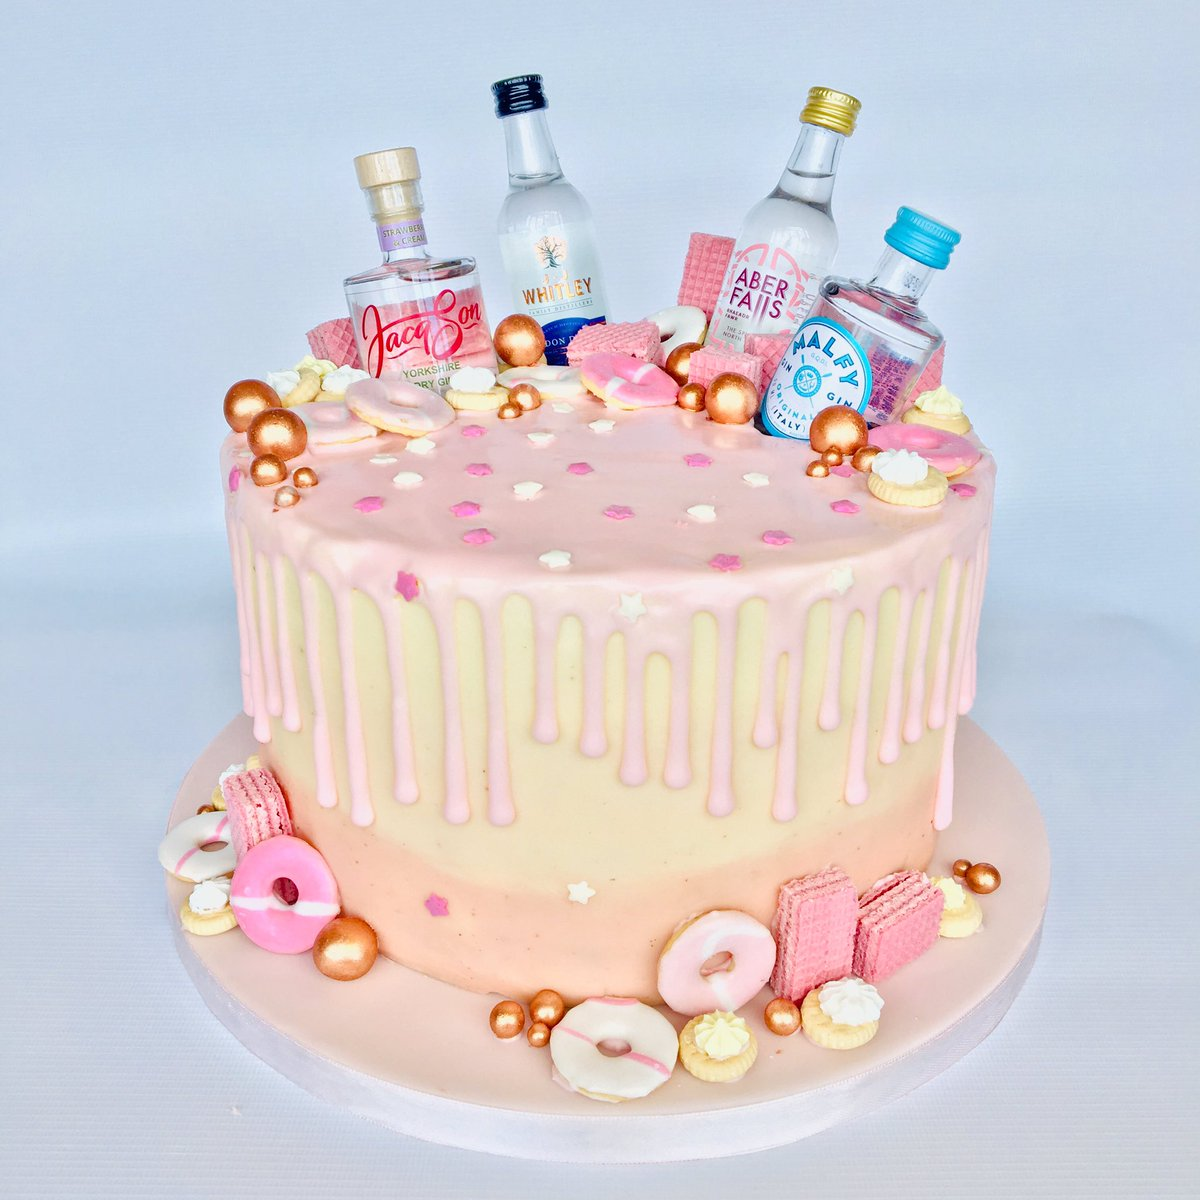 Phenomenal Deborah Bakes On Twitter Cake And Gin What More Could A Girl Funny Birthday Cards Online Necthendildamsfinfo